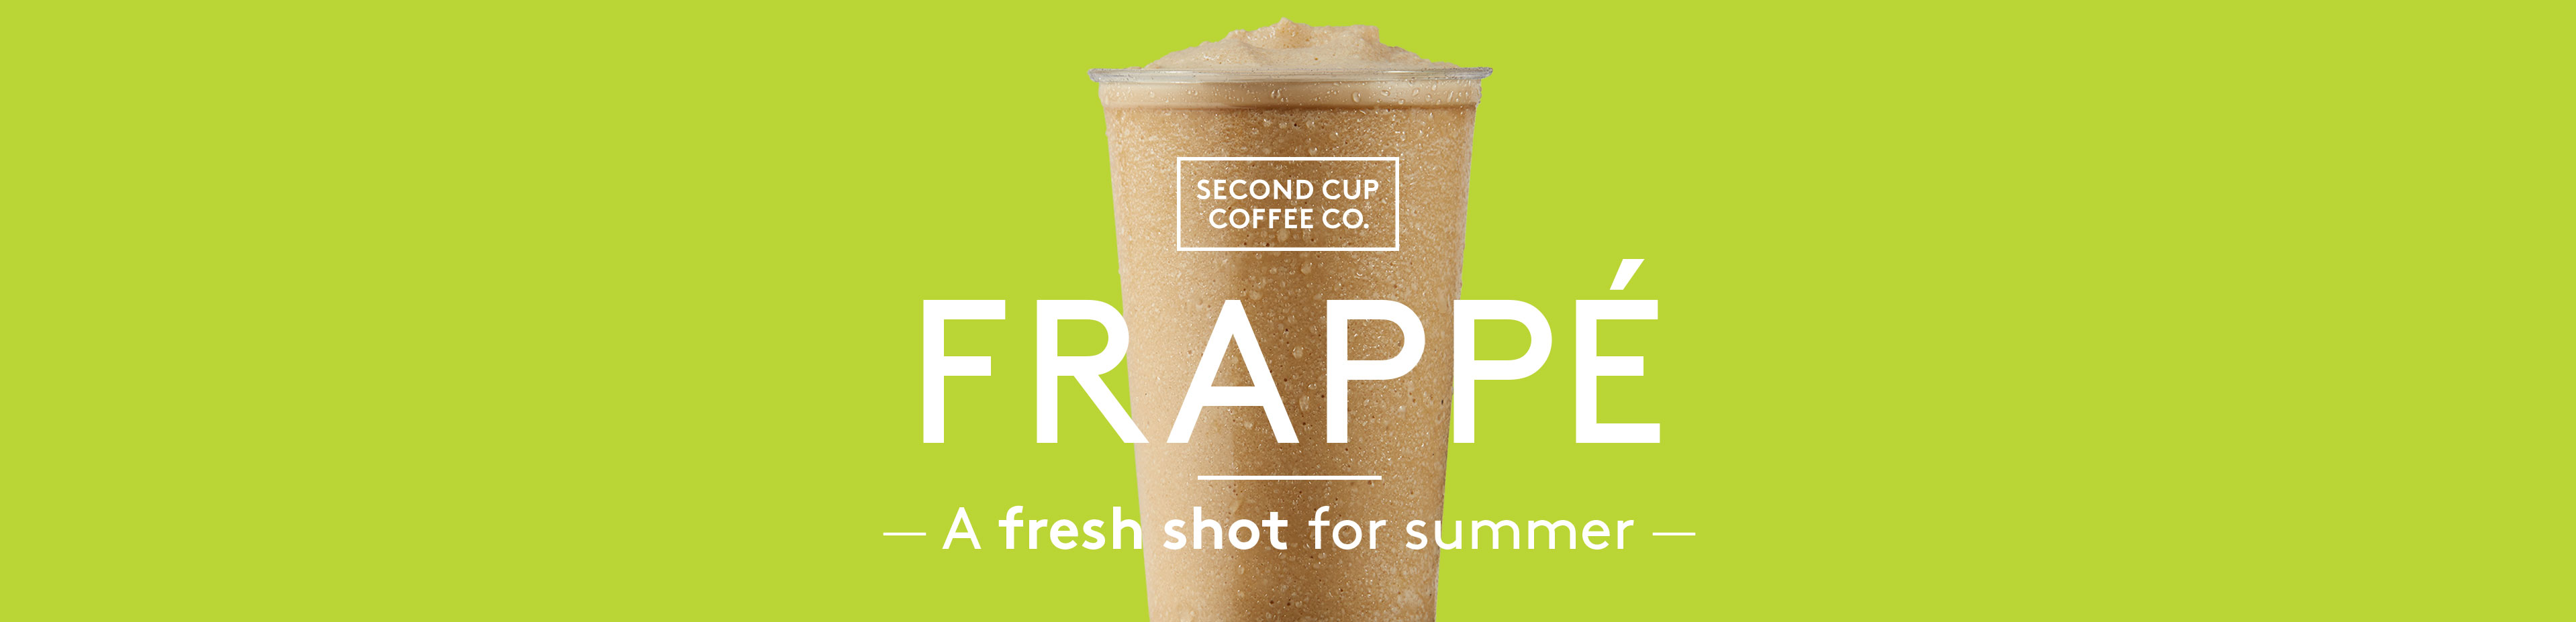 Celebrate the Frappe & Enter to WIN a $140 Prize Pack! #giveaway